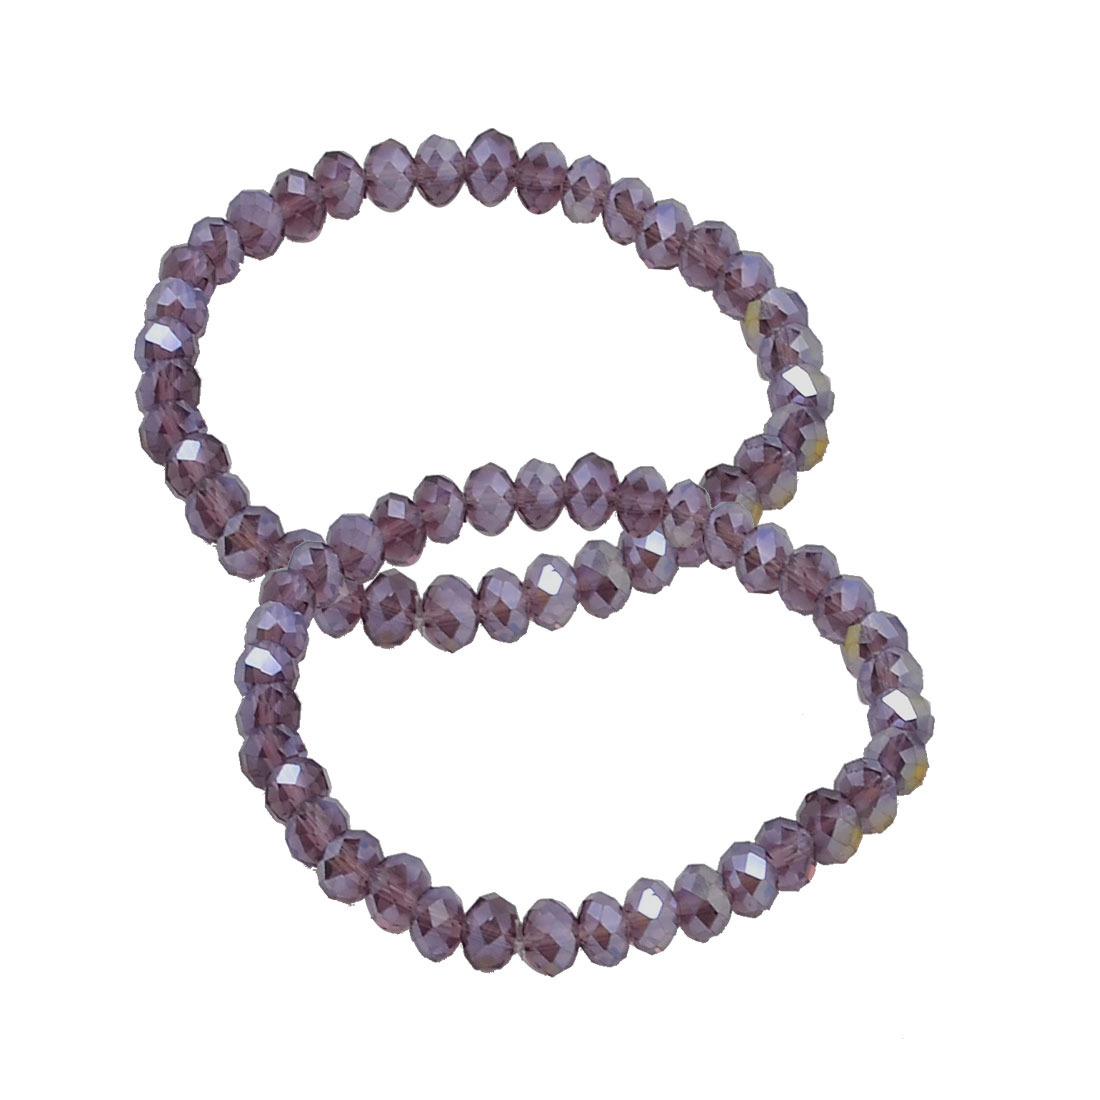 2 Pcs Lady 6mm Dia Plastic Crystal Beaded Stretch Bracelets Bangle Purple